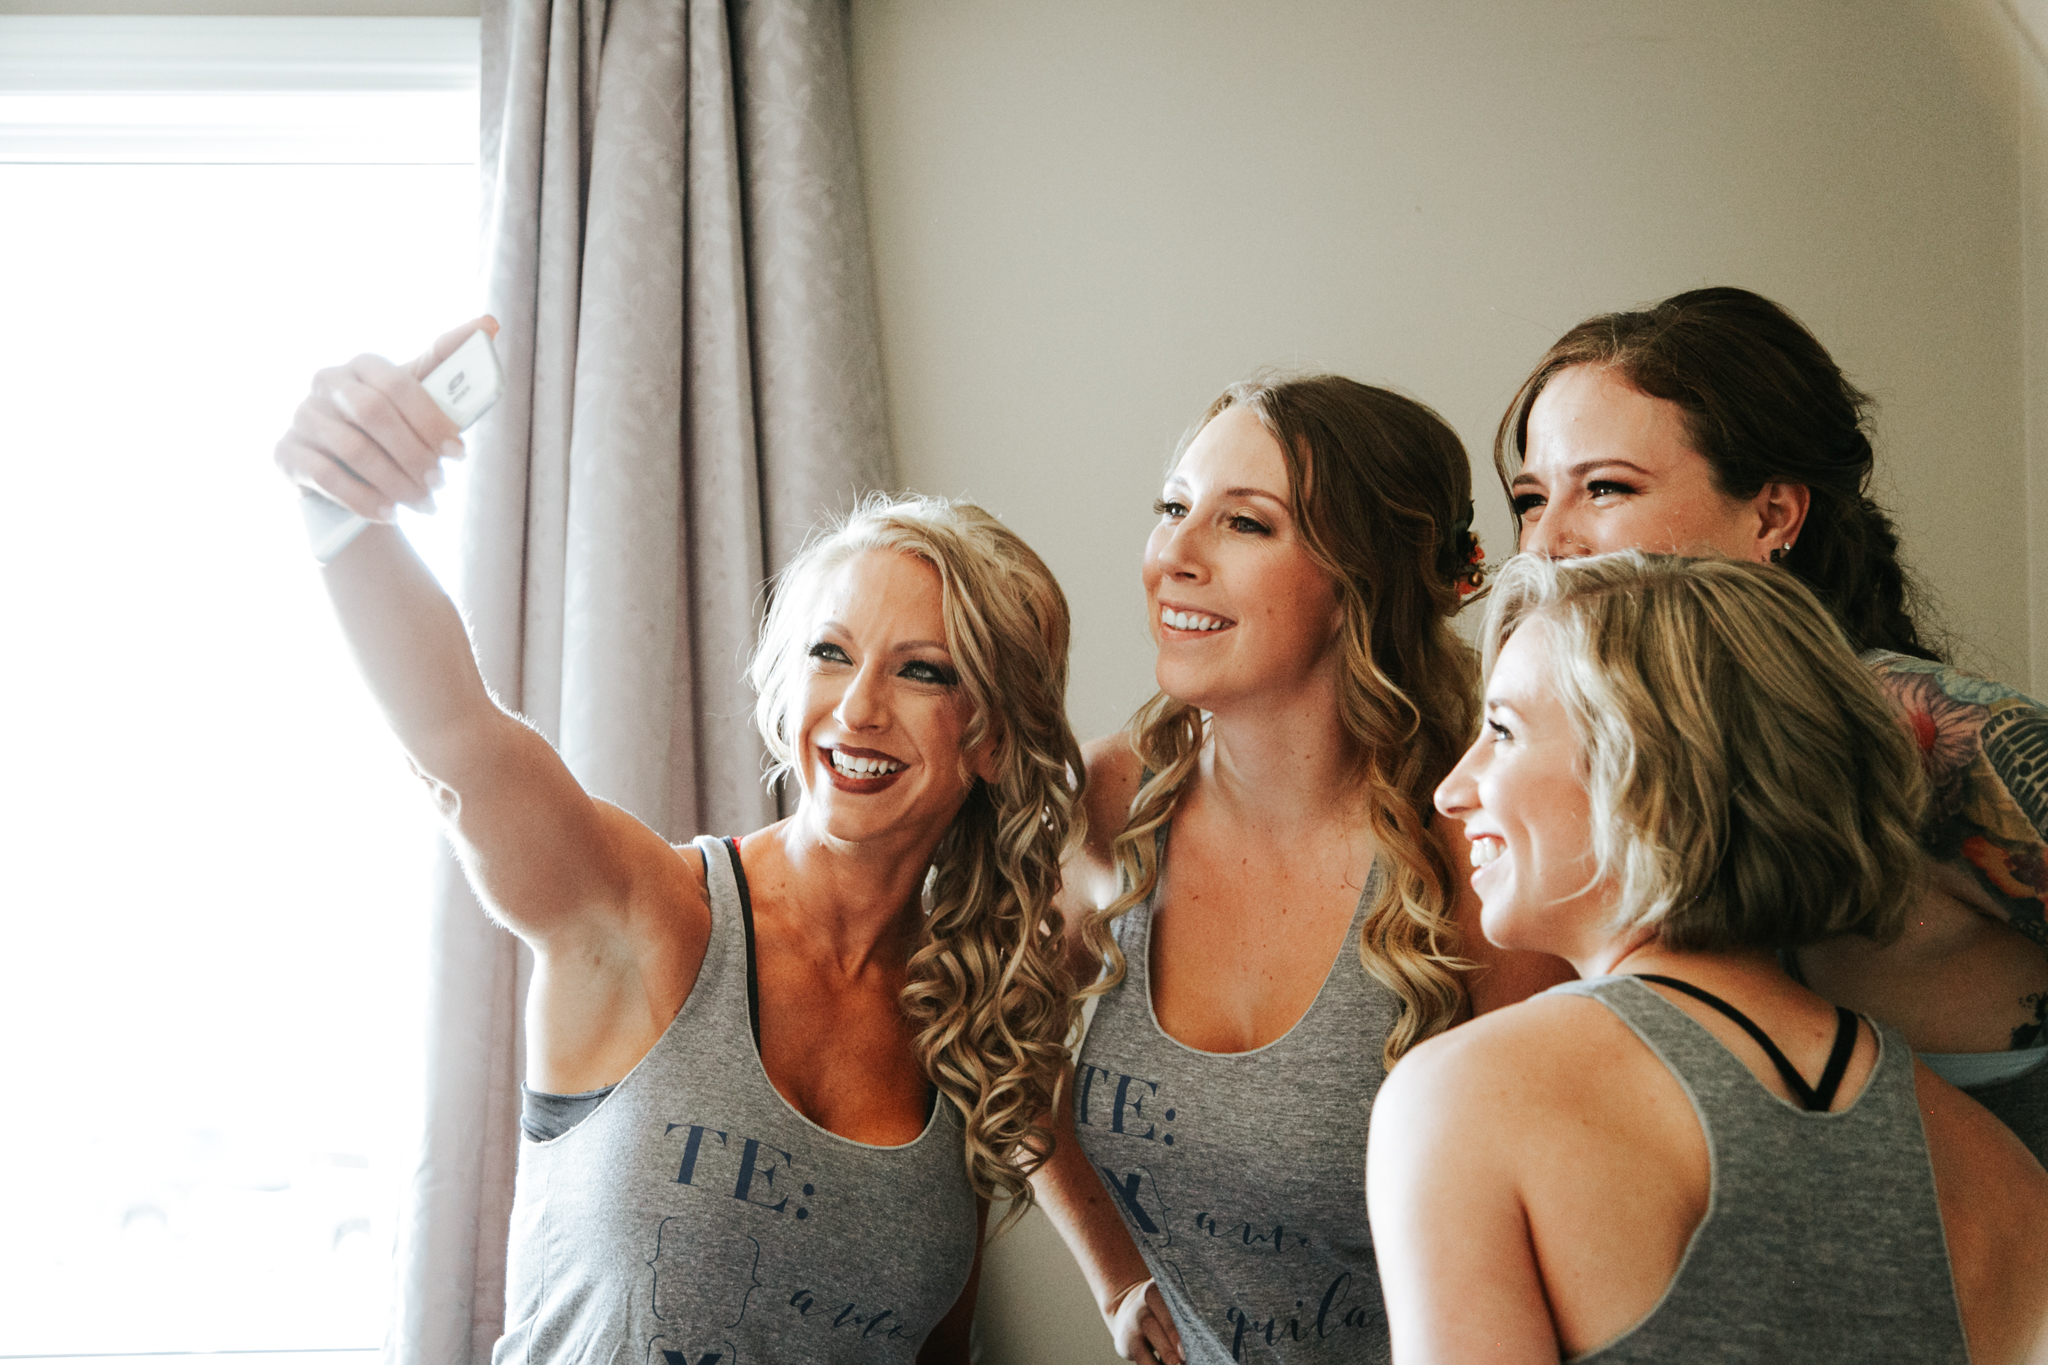 lethbridge-wedding-photographer-love-and-be-loved-photography-bride-prep-photo-image-picture-4.jpg